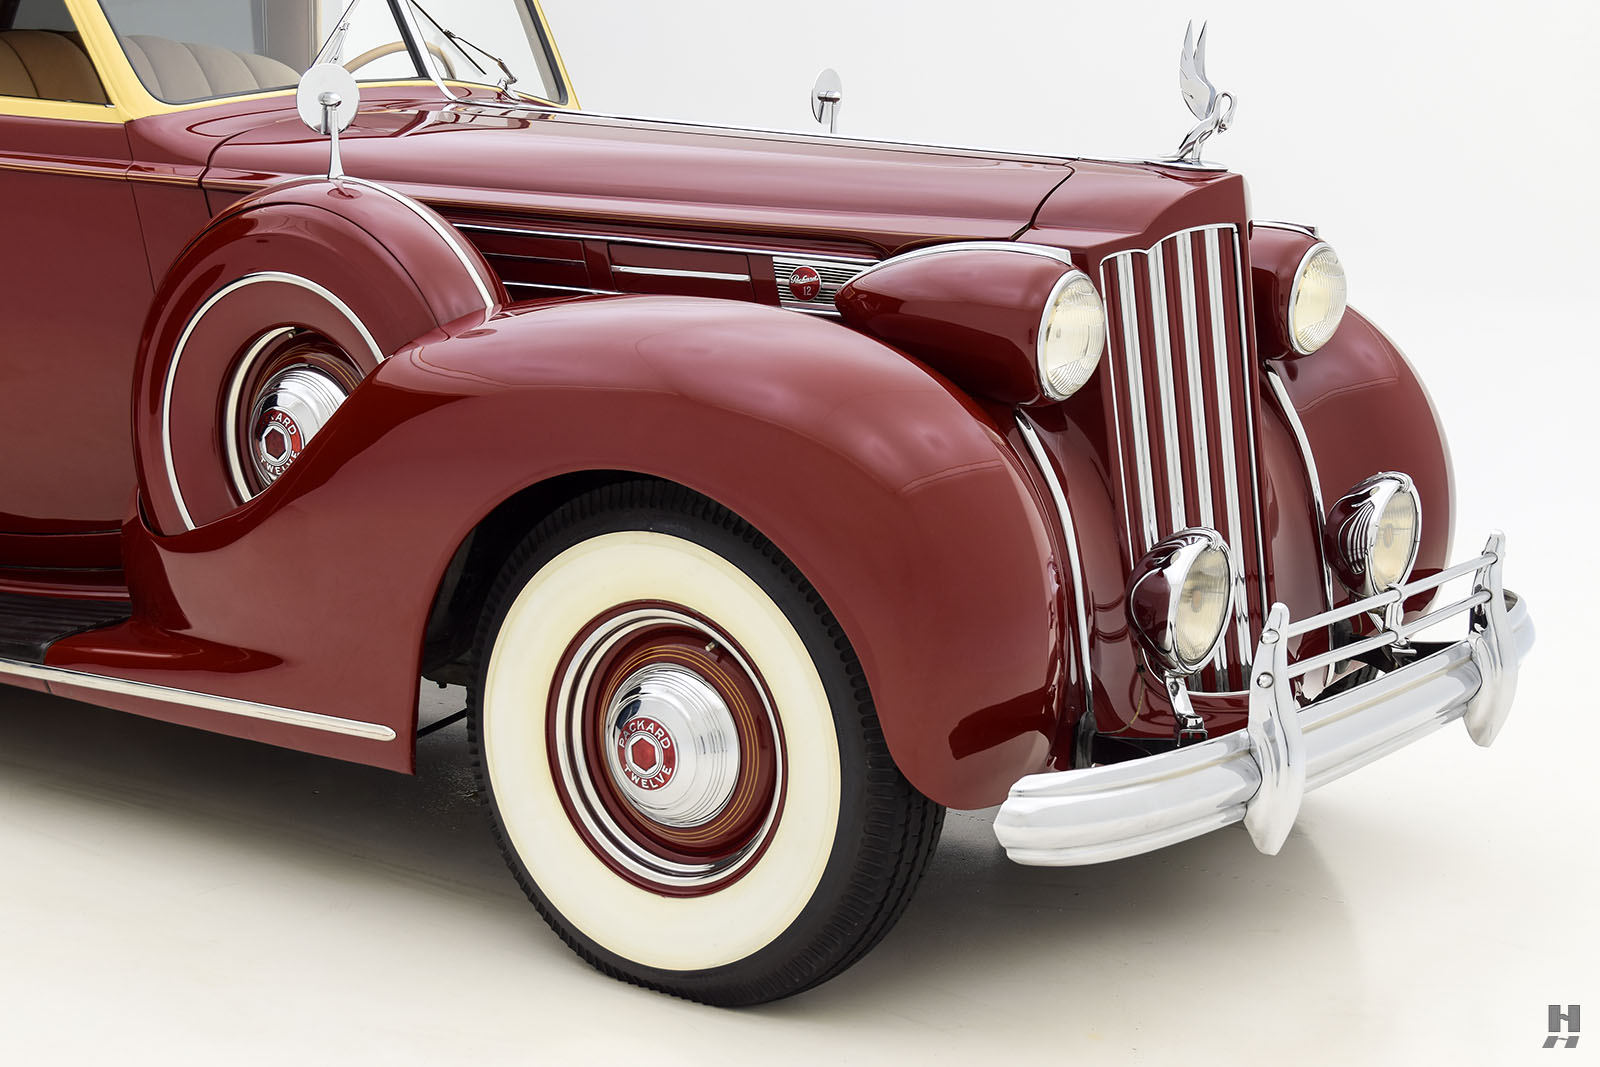 Used Cars Buffalo >> 1939 Packard Twelve Touring Cabriolet For Sale | Buy ...